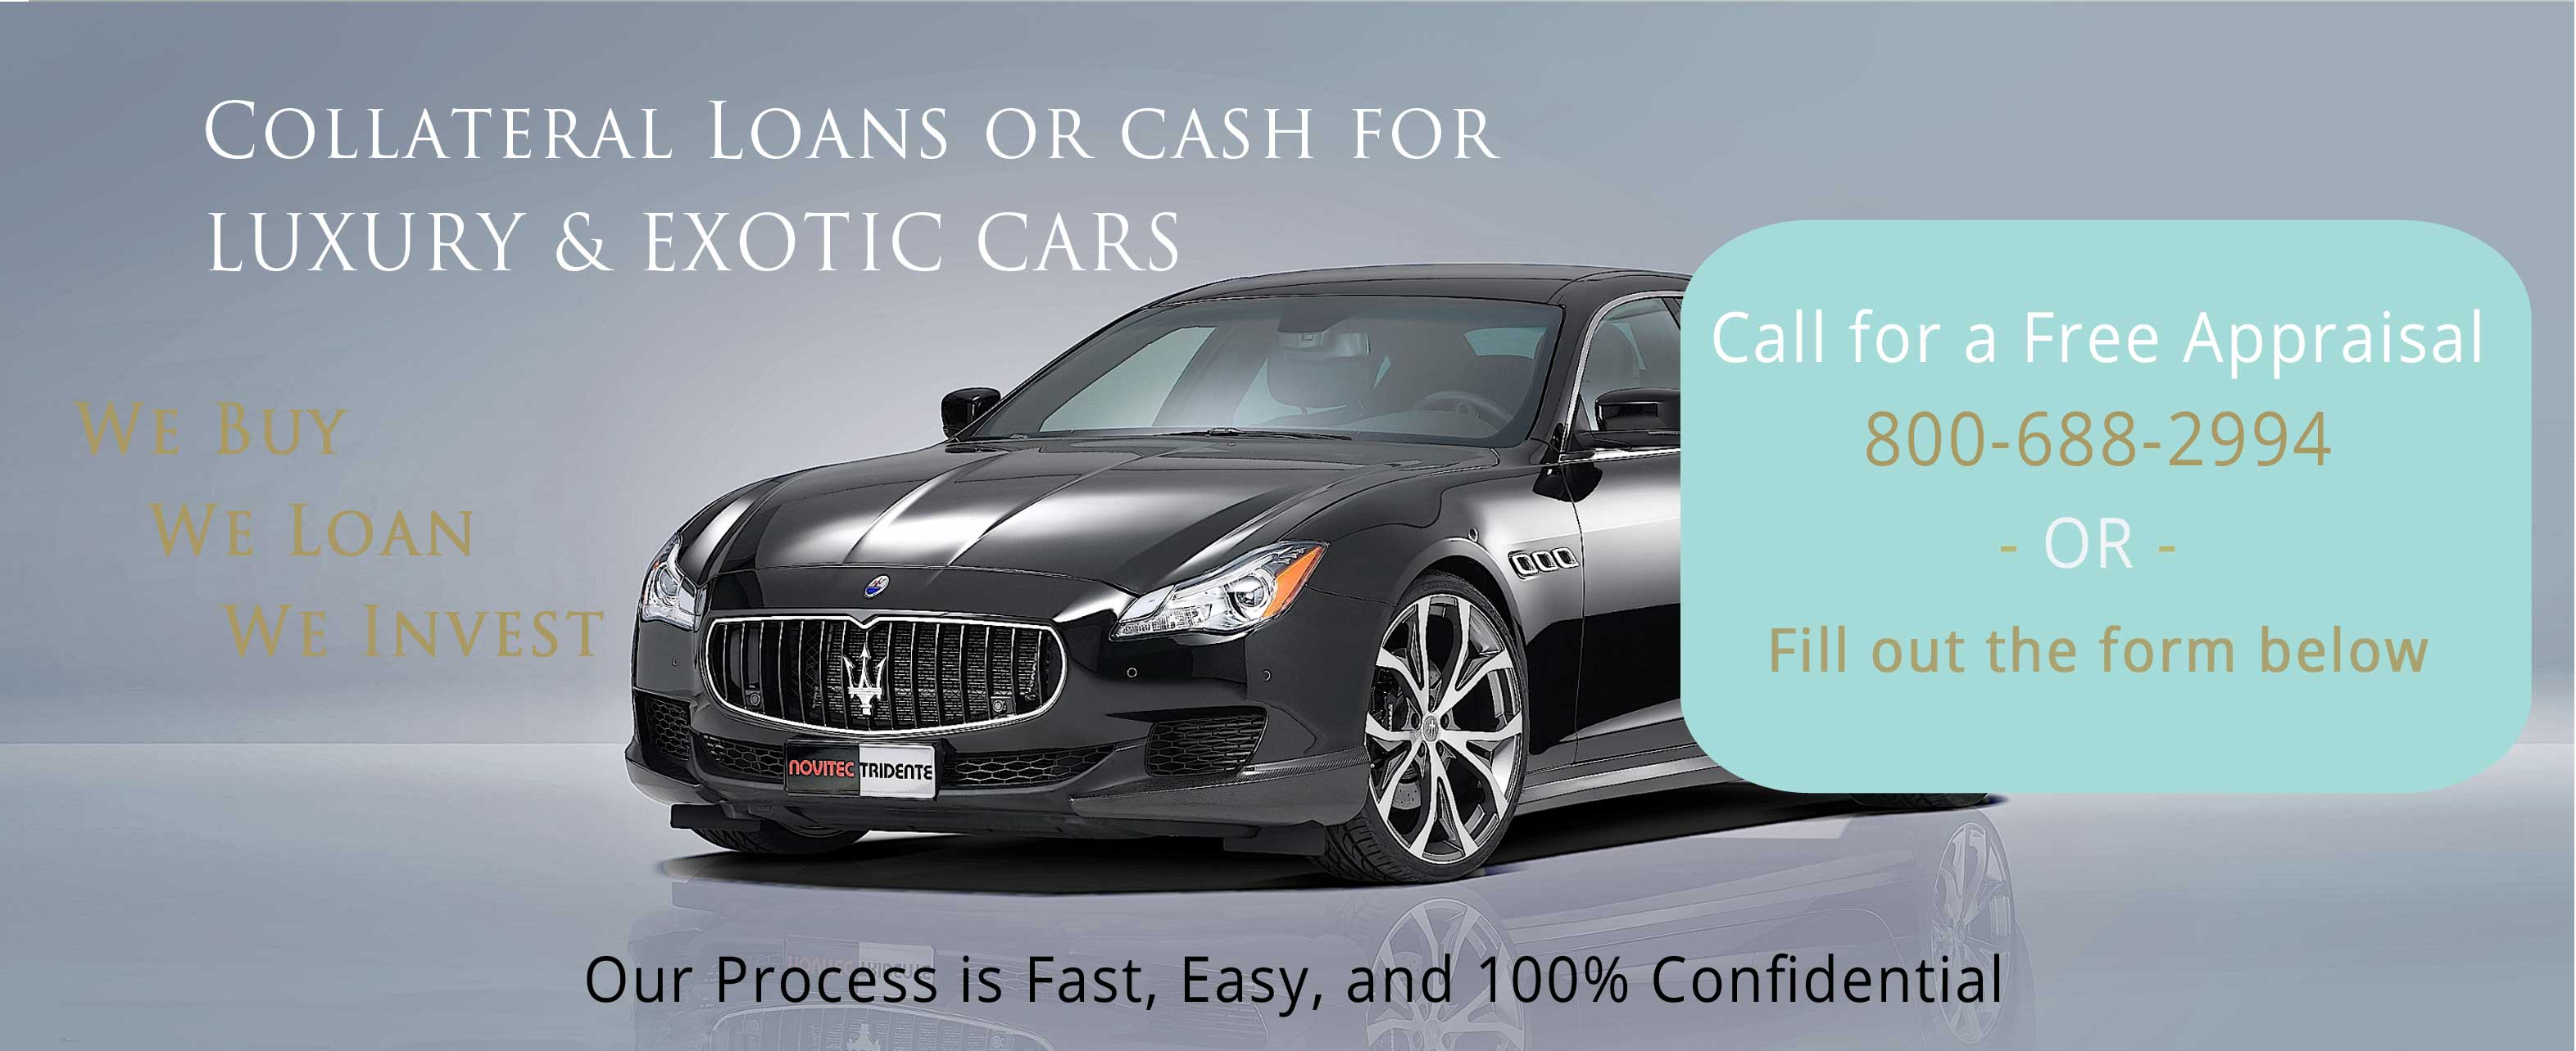 how to get a loan with my car as collateral